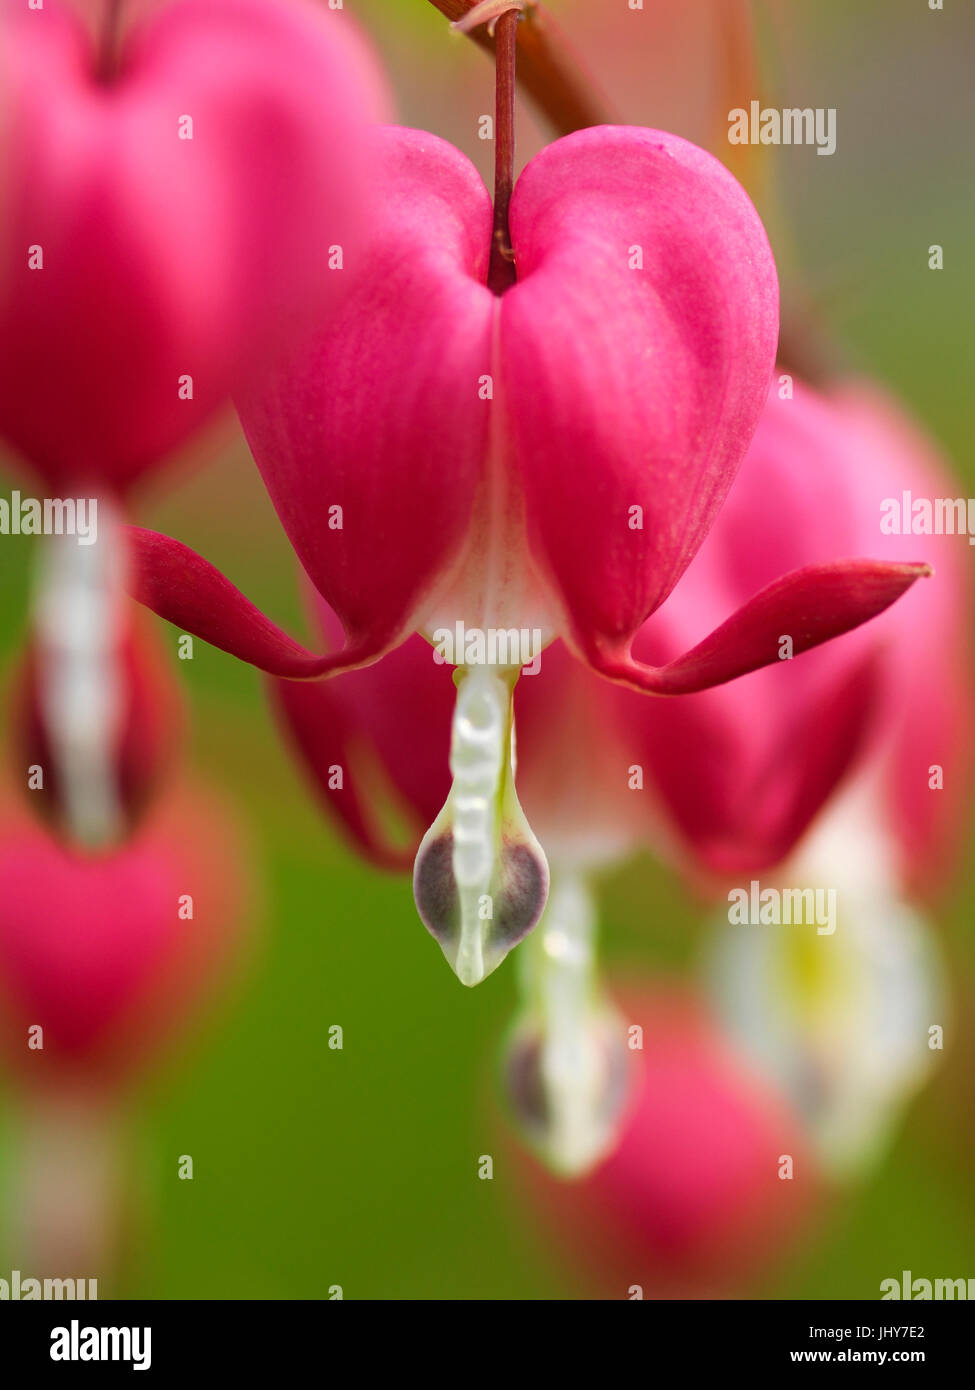 Watering heart (Dicentra spectabilis) - Lyre flower (Dicentra spectabilis), Tränendes Herz (Dicentra spectabilis) - Stock Image